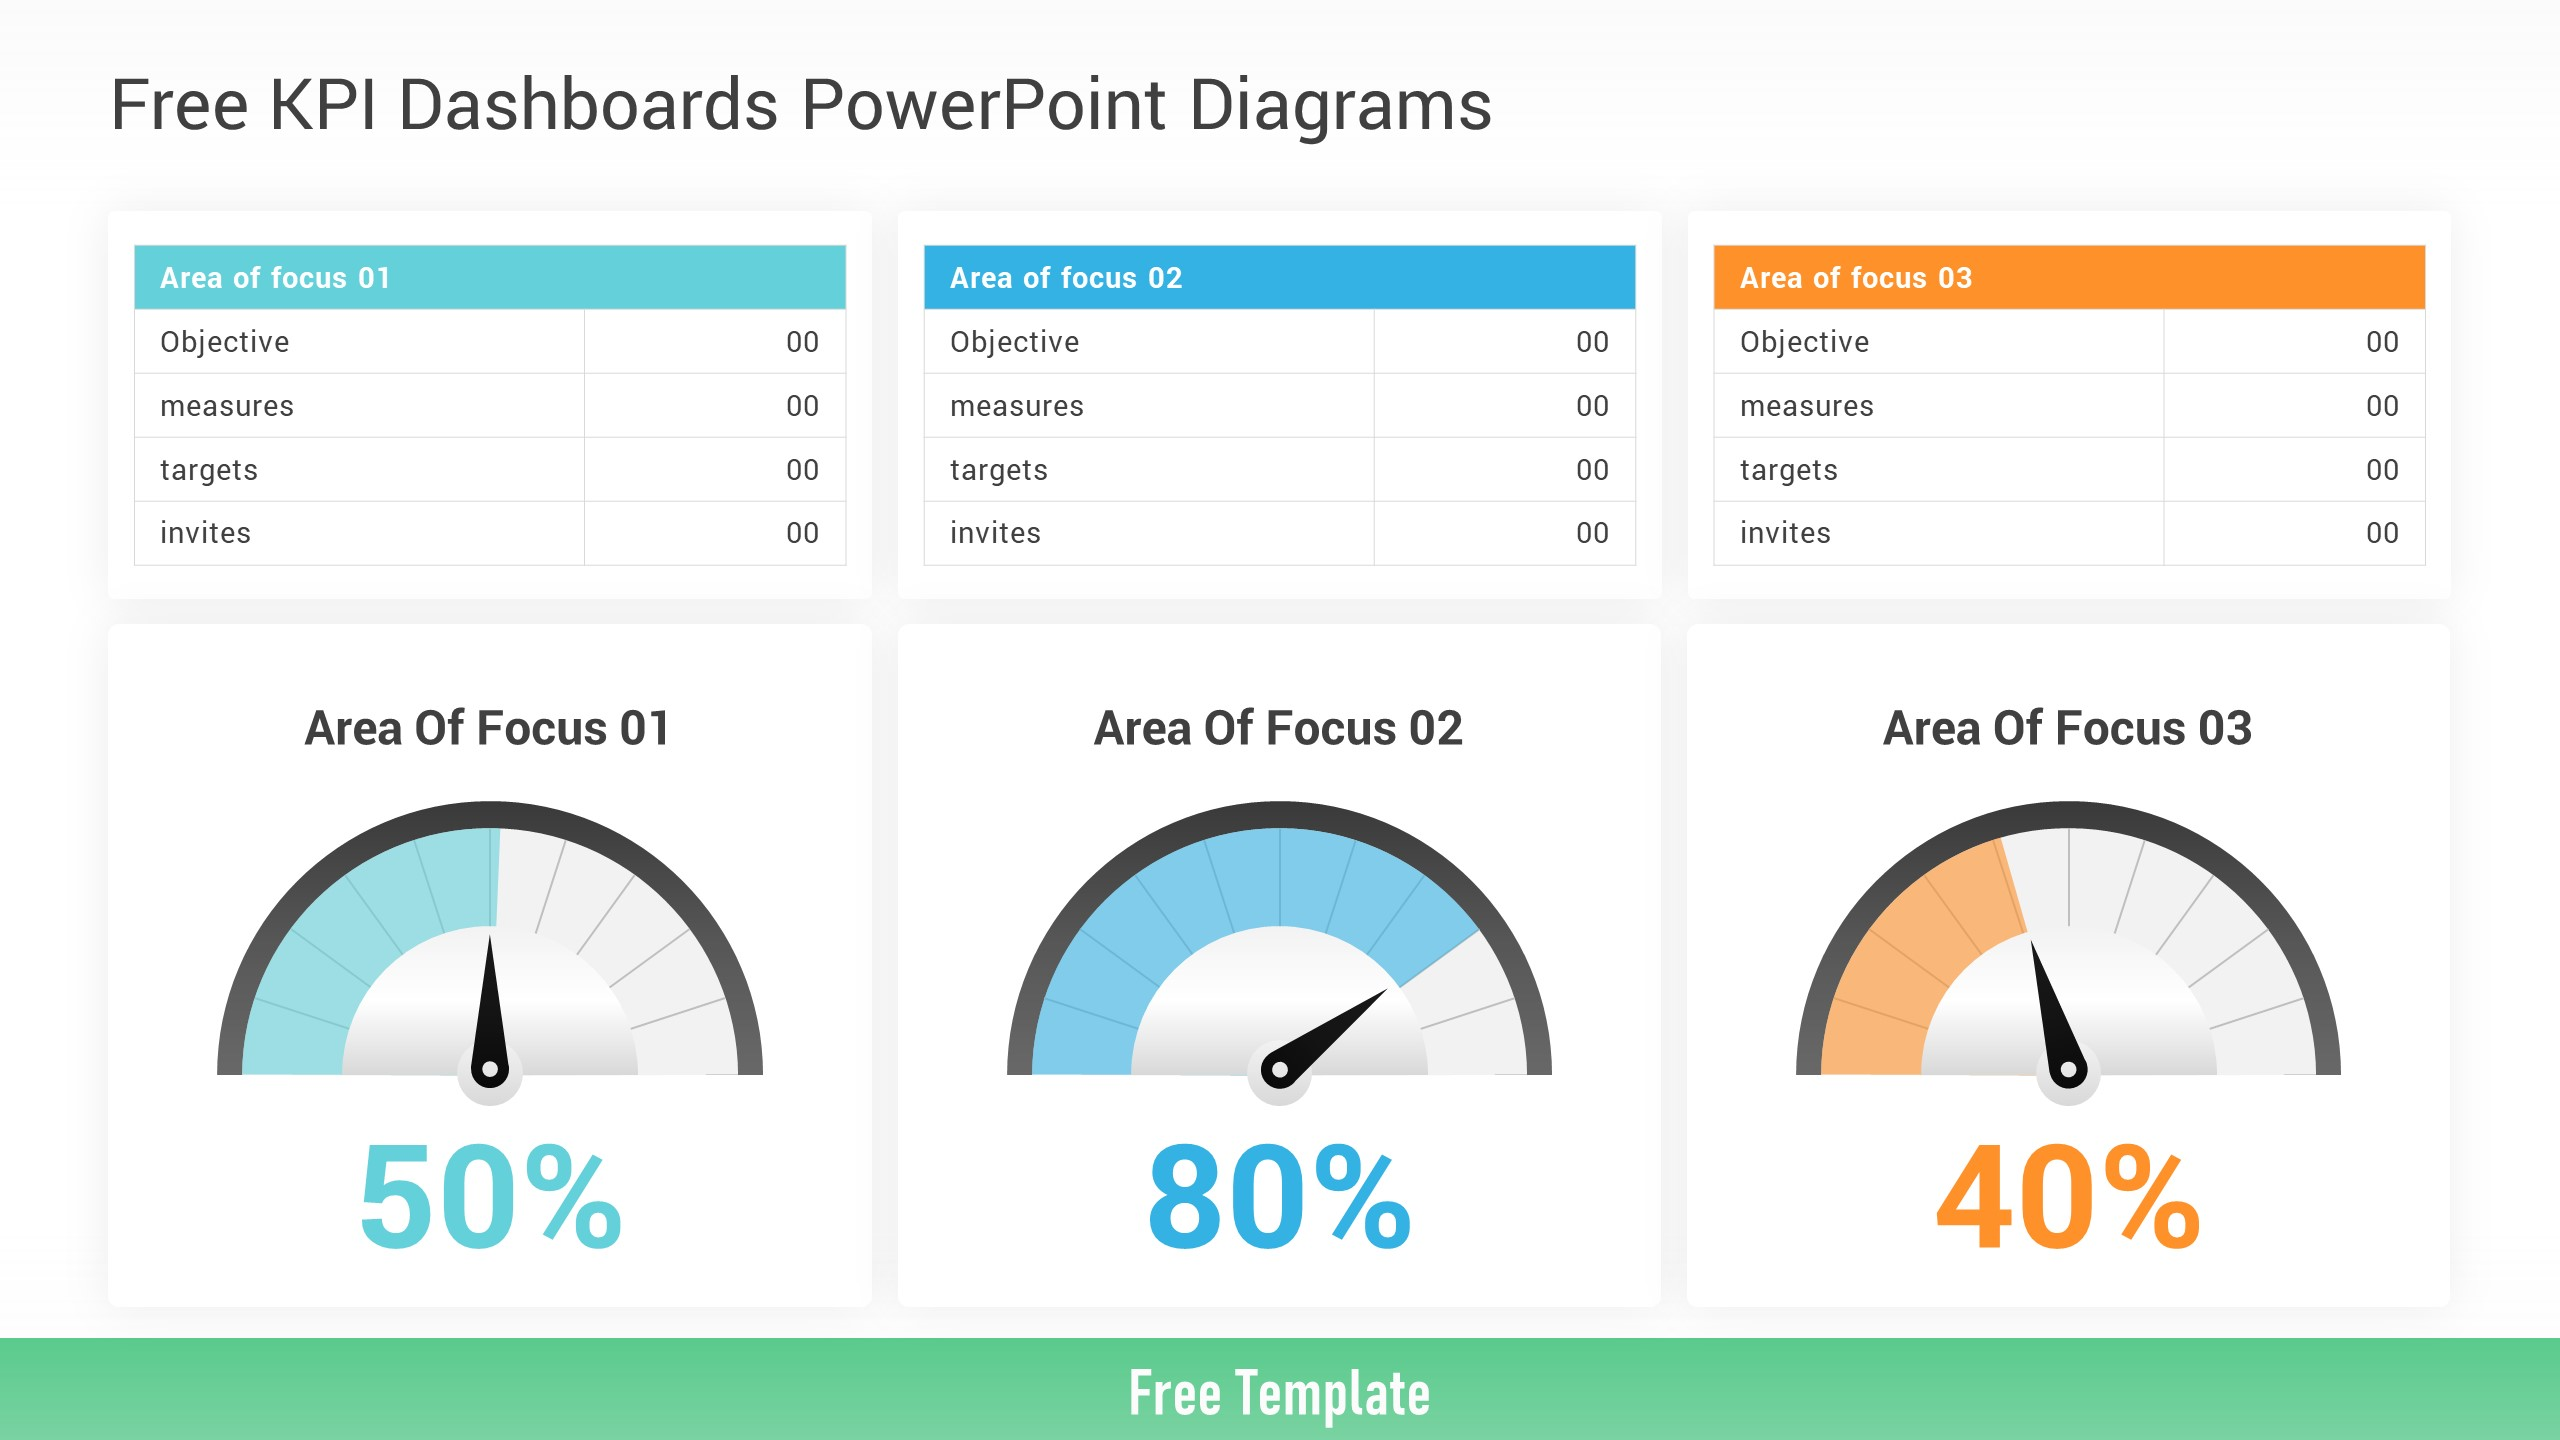 Free KPI Dashboards PowerPoint Diagrams